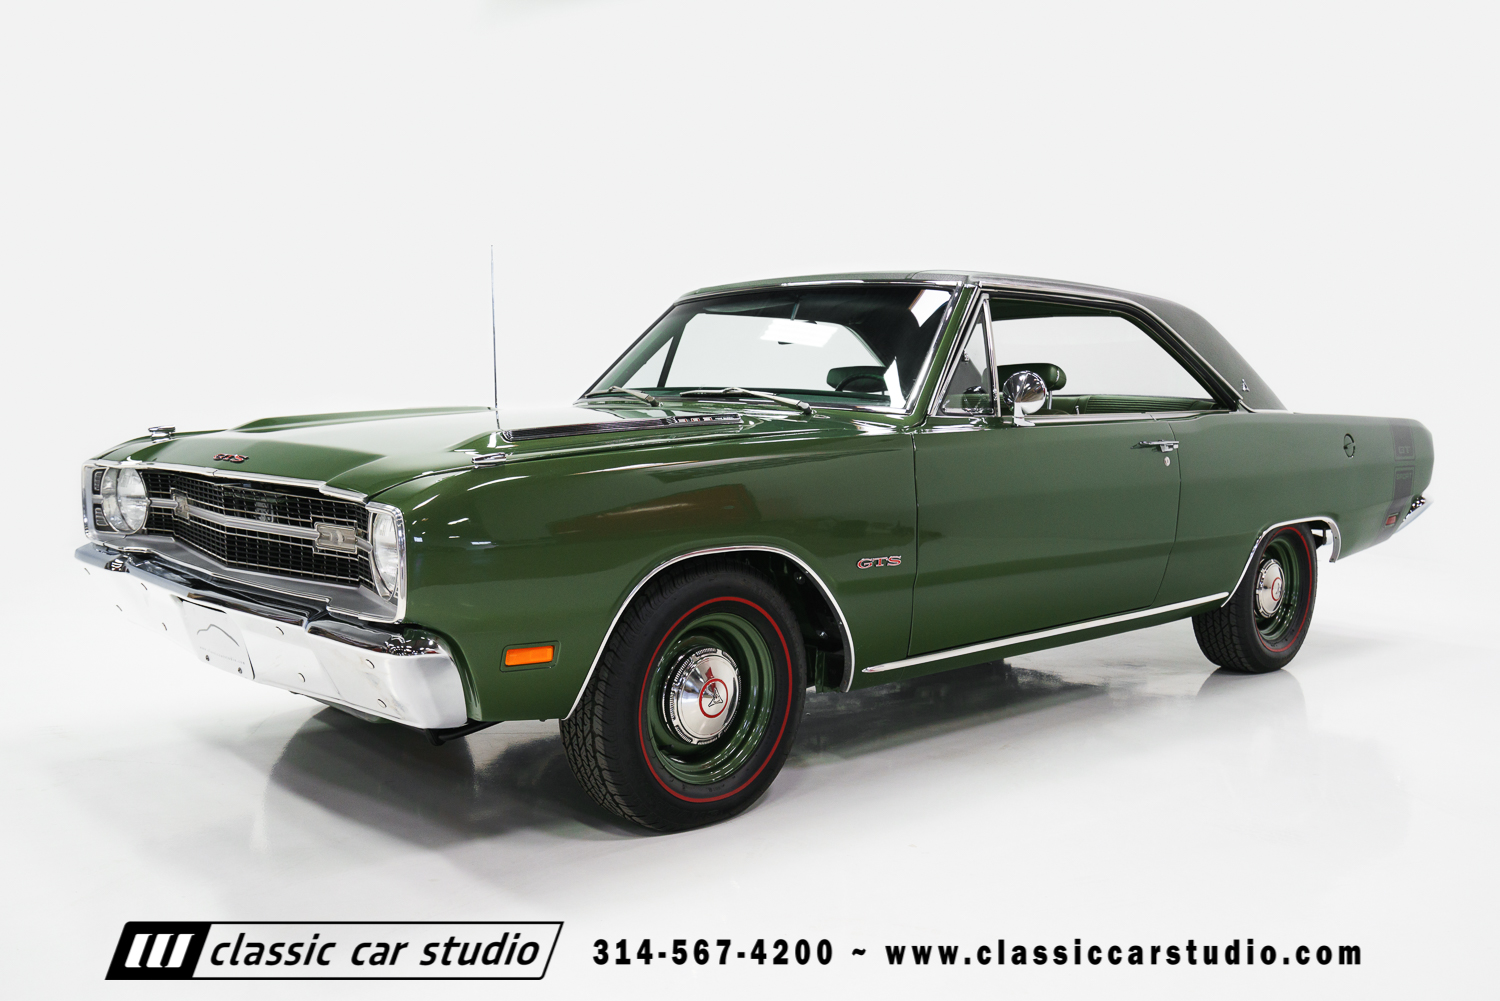 Chevy silverado with an apache body kit besides Showthread as well 1755 1969 Dodge Dart Gts 2 furthermore 1771 1969 Plymouth Barracuda further 1969 CHEVROLET C 10 CUSTOM PICKUP 61074. on 69 c10 show truck interior